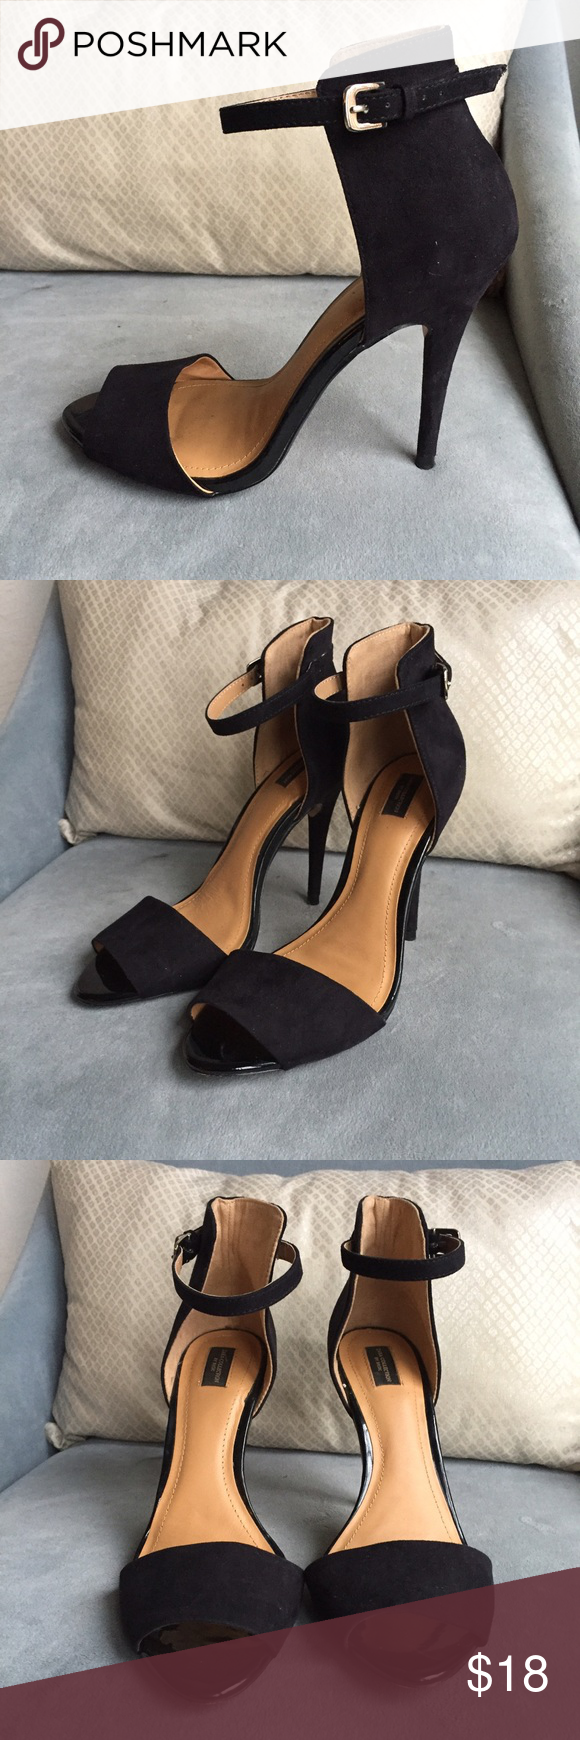 Zara Black Suede Heels Only worn once. Like new condition. Size 38 in euro sizing. Fits more like a 7.5. Zara Shoes Heels